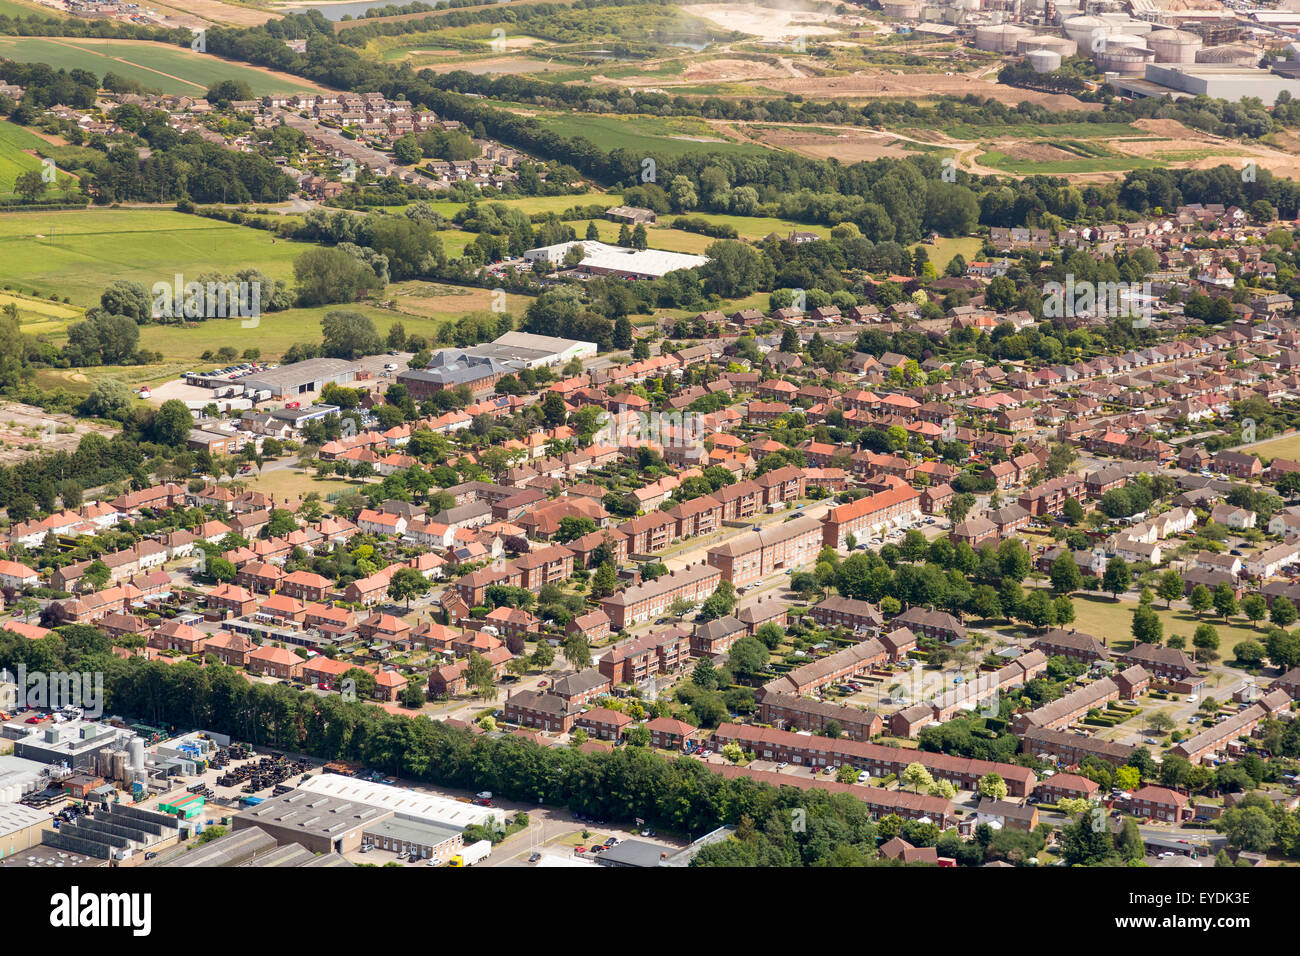 aerial view of Mildenhall housing estate in Bury St Edmunds, Suffolk, UK, built in the late 1940's - 1950's - Stock Image